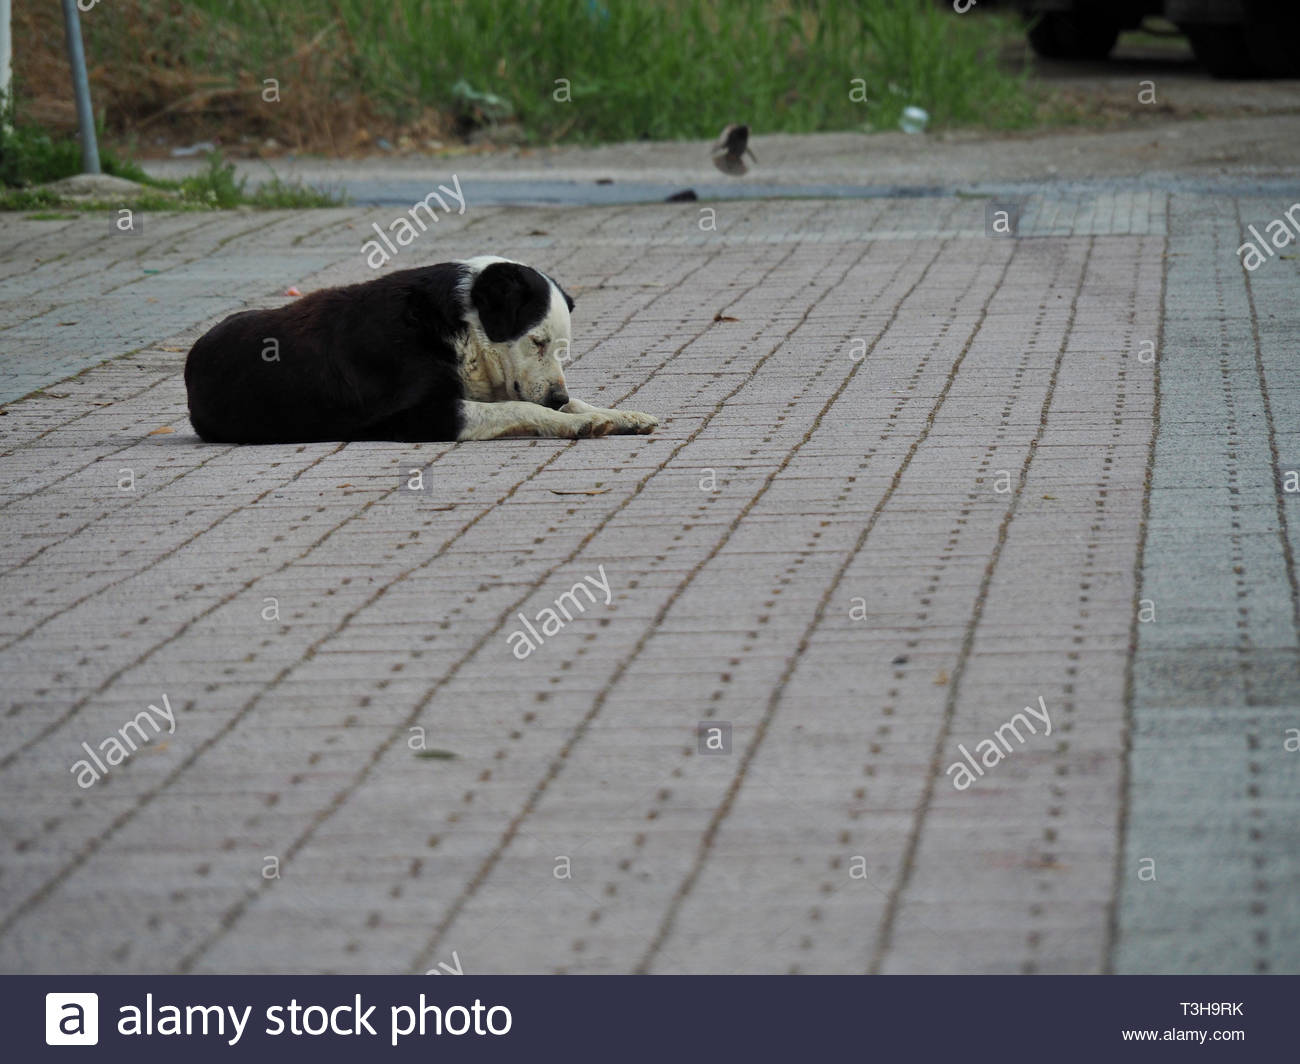 black and white stray dog sleeping at the side walk Stock Photo